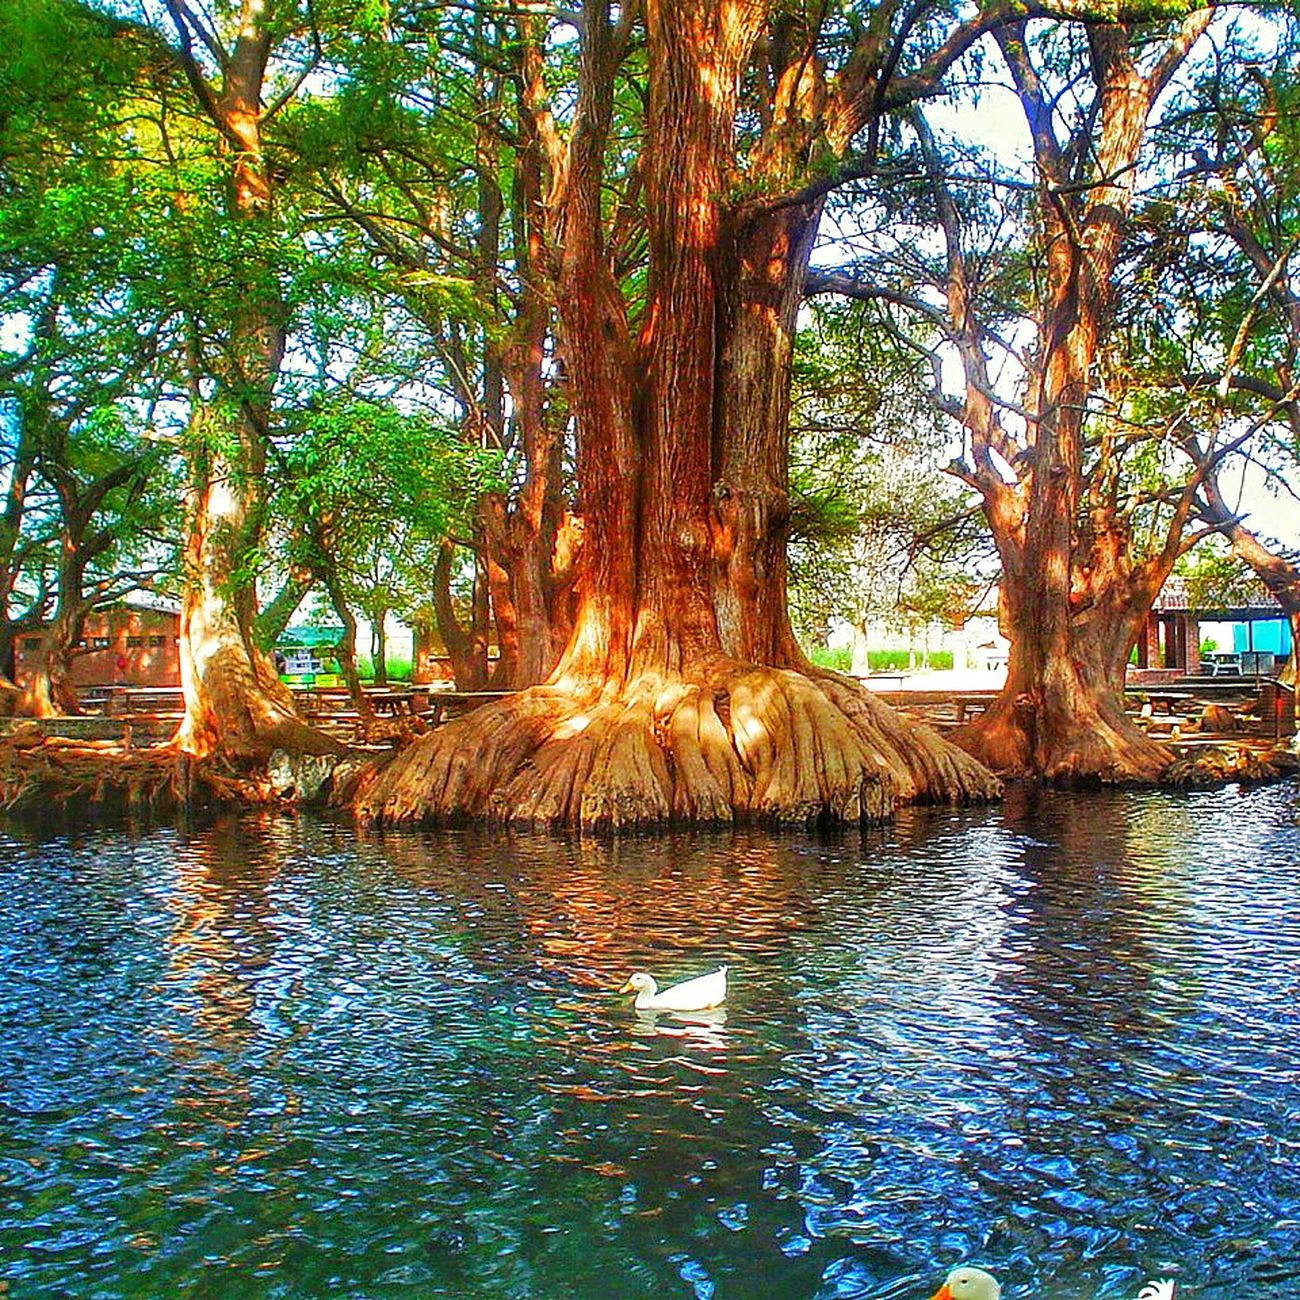 Camecuaro Camecuaro Michoacan Tree Trees Tree_collection  Trees And Nature Tree_collection  Water Reflections Water Reflection Watercolor Water Reflection Michoacan Michoacan, México Michoacan Mexico❤ Michoacan De Ocampo MICHOACAN✌😘💯 Mexicoandando Mexico_maravilloso Mexico Es Vida  Mexicolors Mexico Mexico Travel Mexico Una Mirada Al Mundo Mexicoalternativo